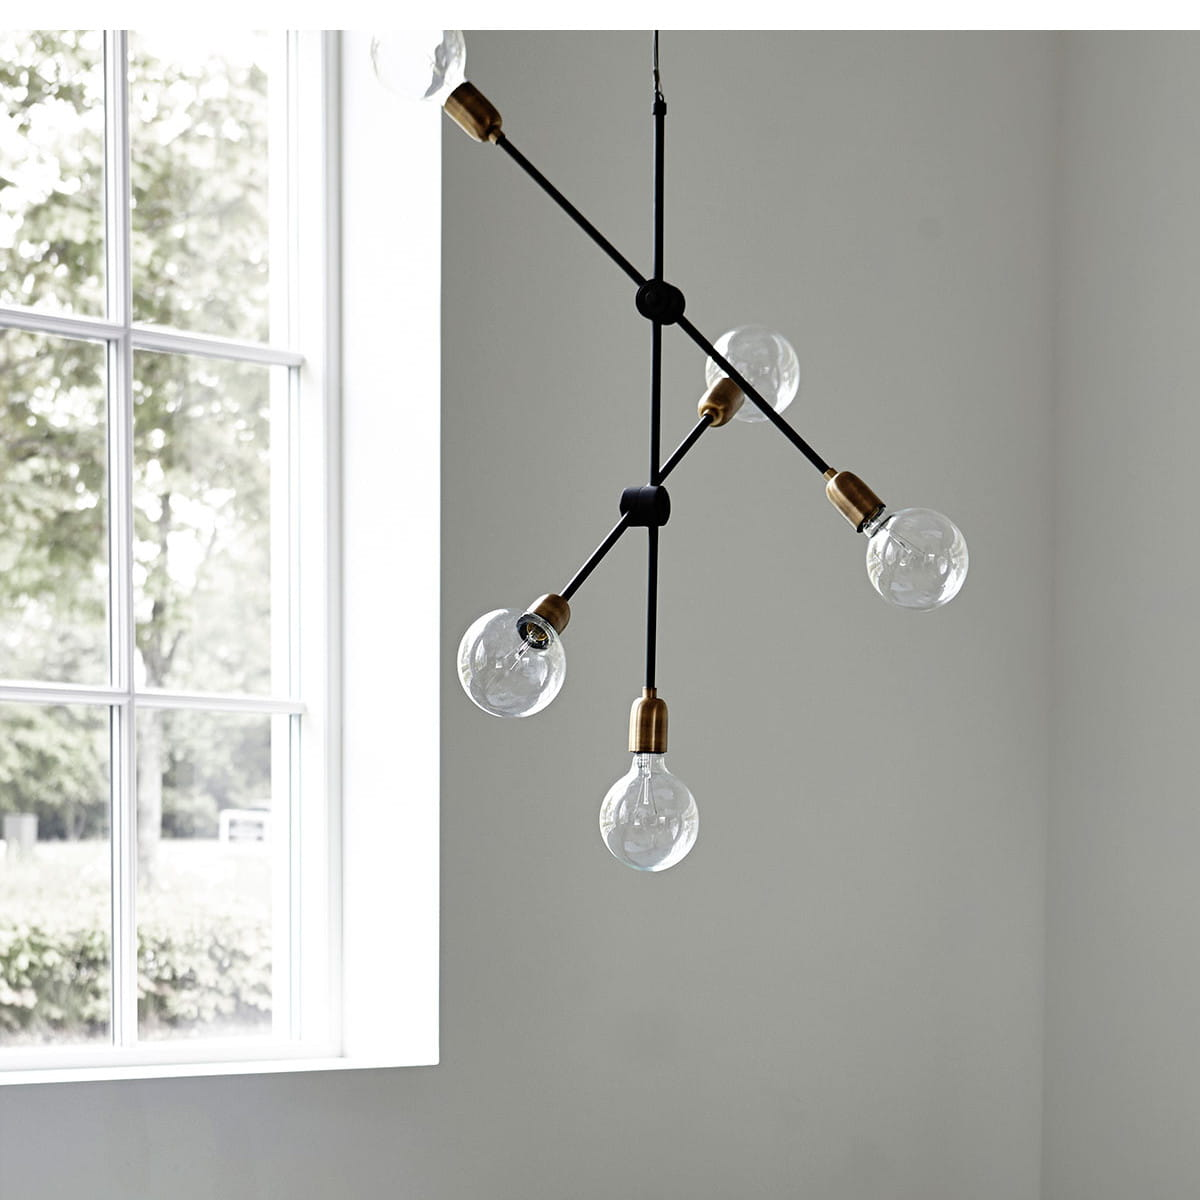 Pendant lamp MOLECULAR II House Doctor Nordic Decoration Home